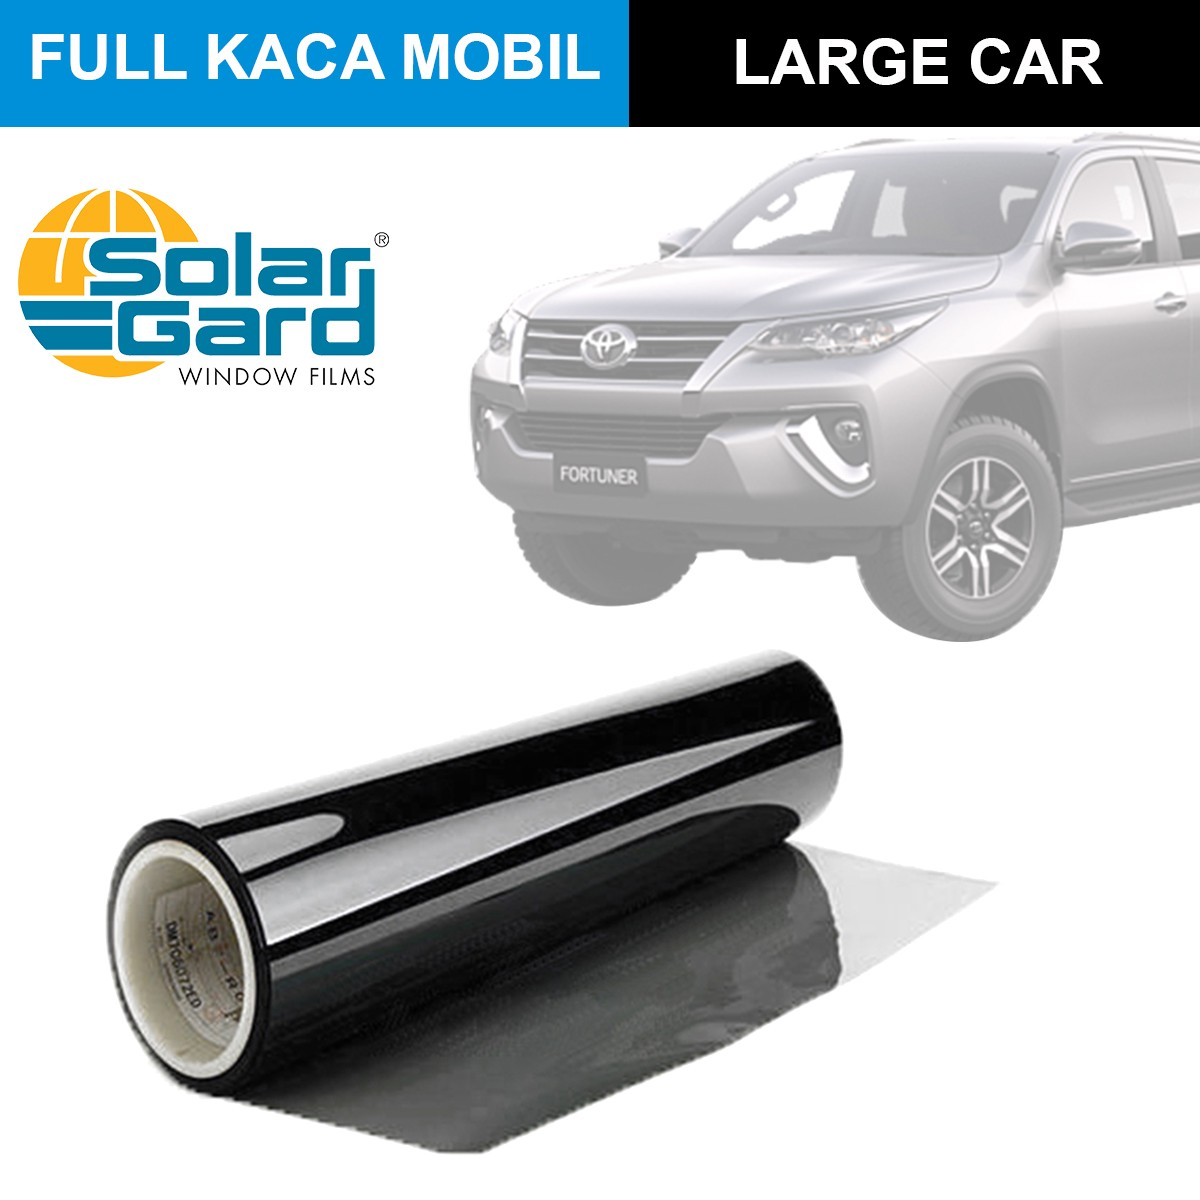 KACA FILM SOLAR GARD KOMBINASI LX + BLACK PHANTOM - (LARGE CAR) FULL KACA